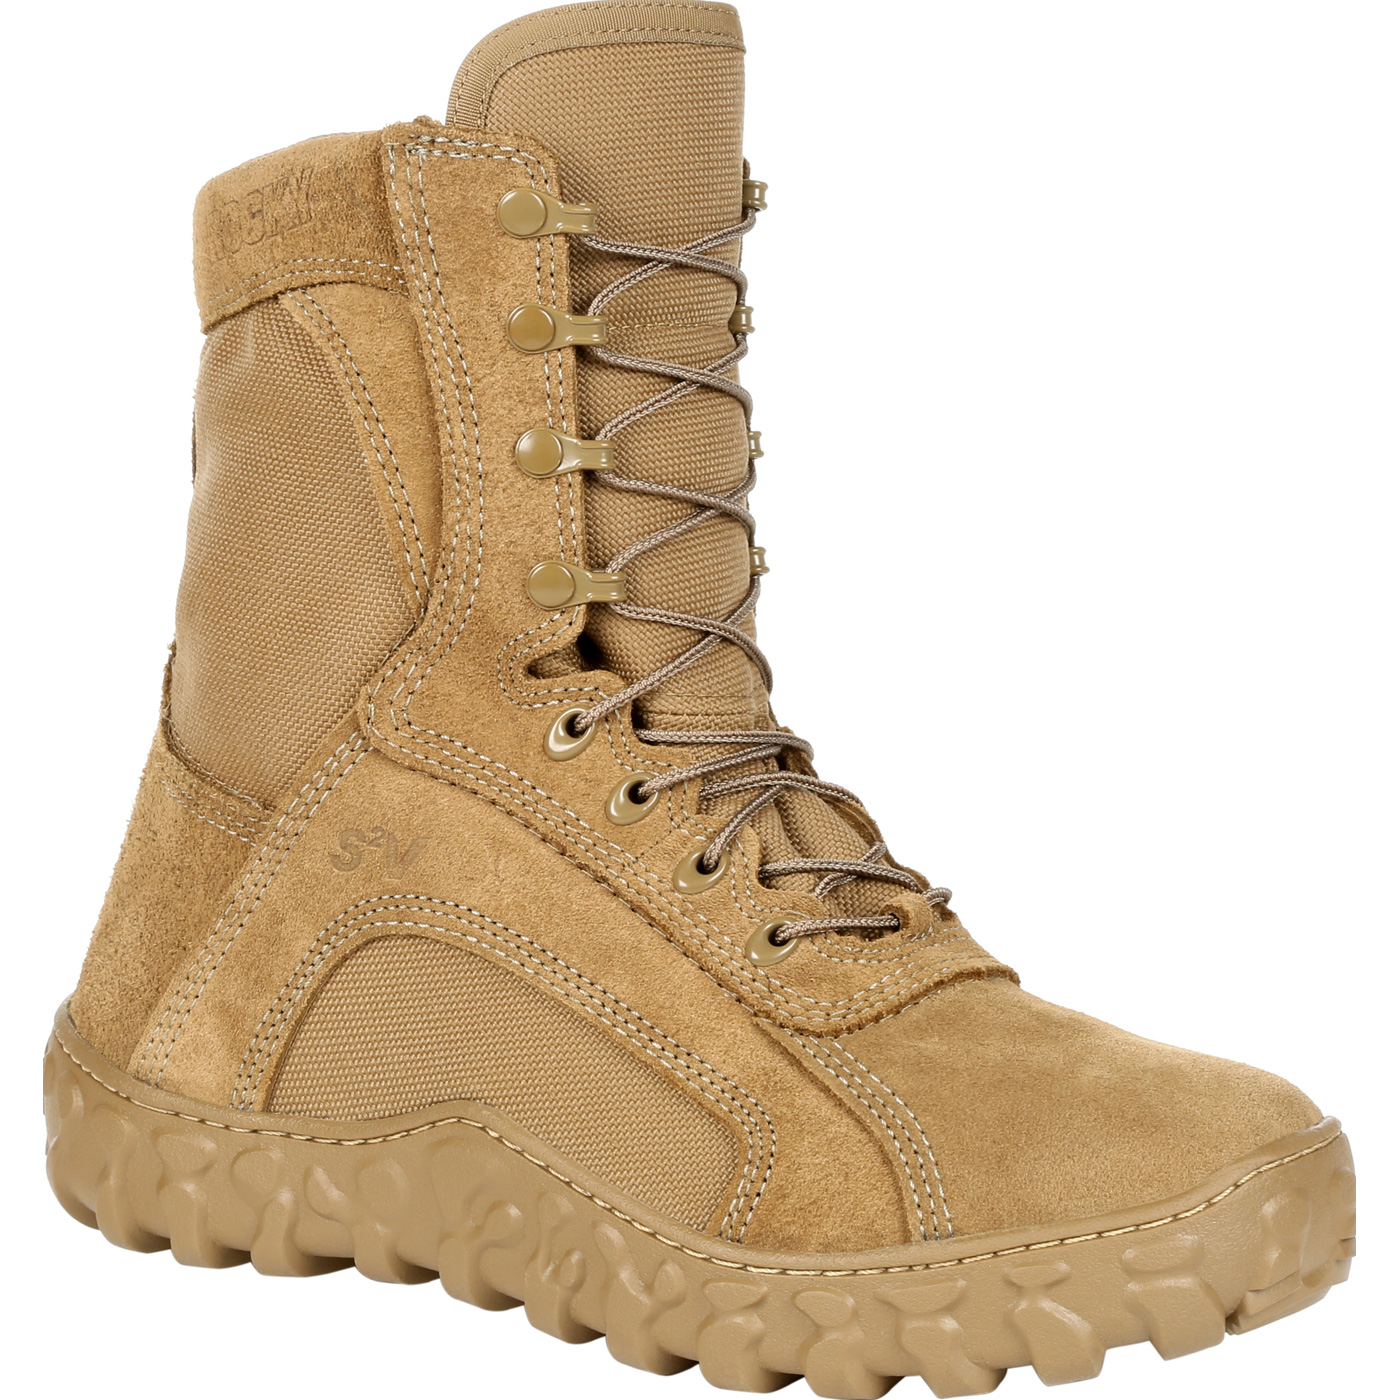 Rocky S2V Waterproof 400G Insulated Tactical Military Boot 5